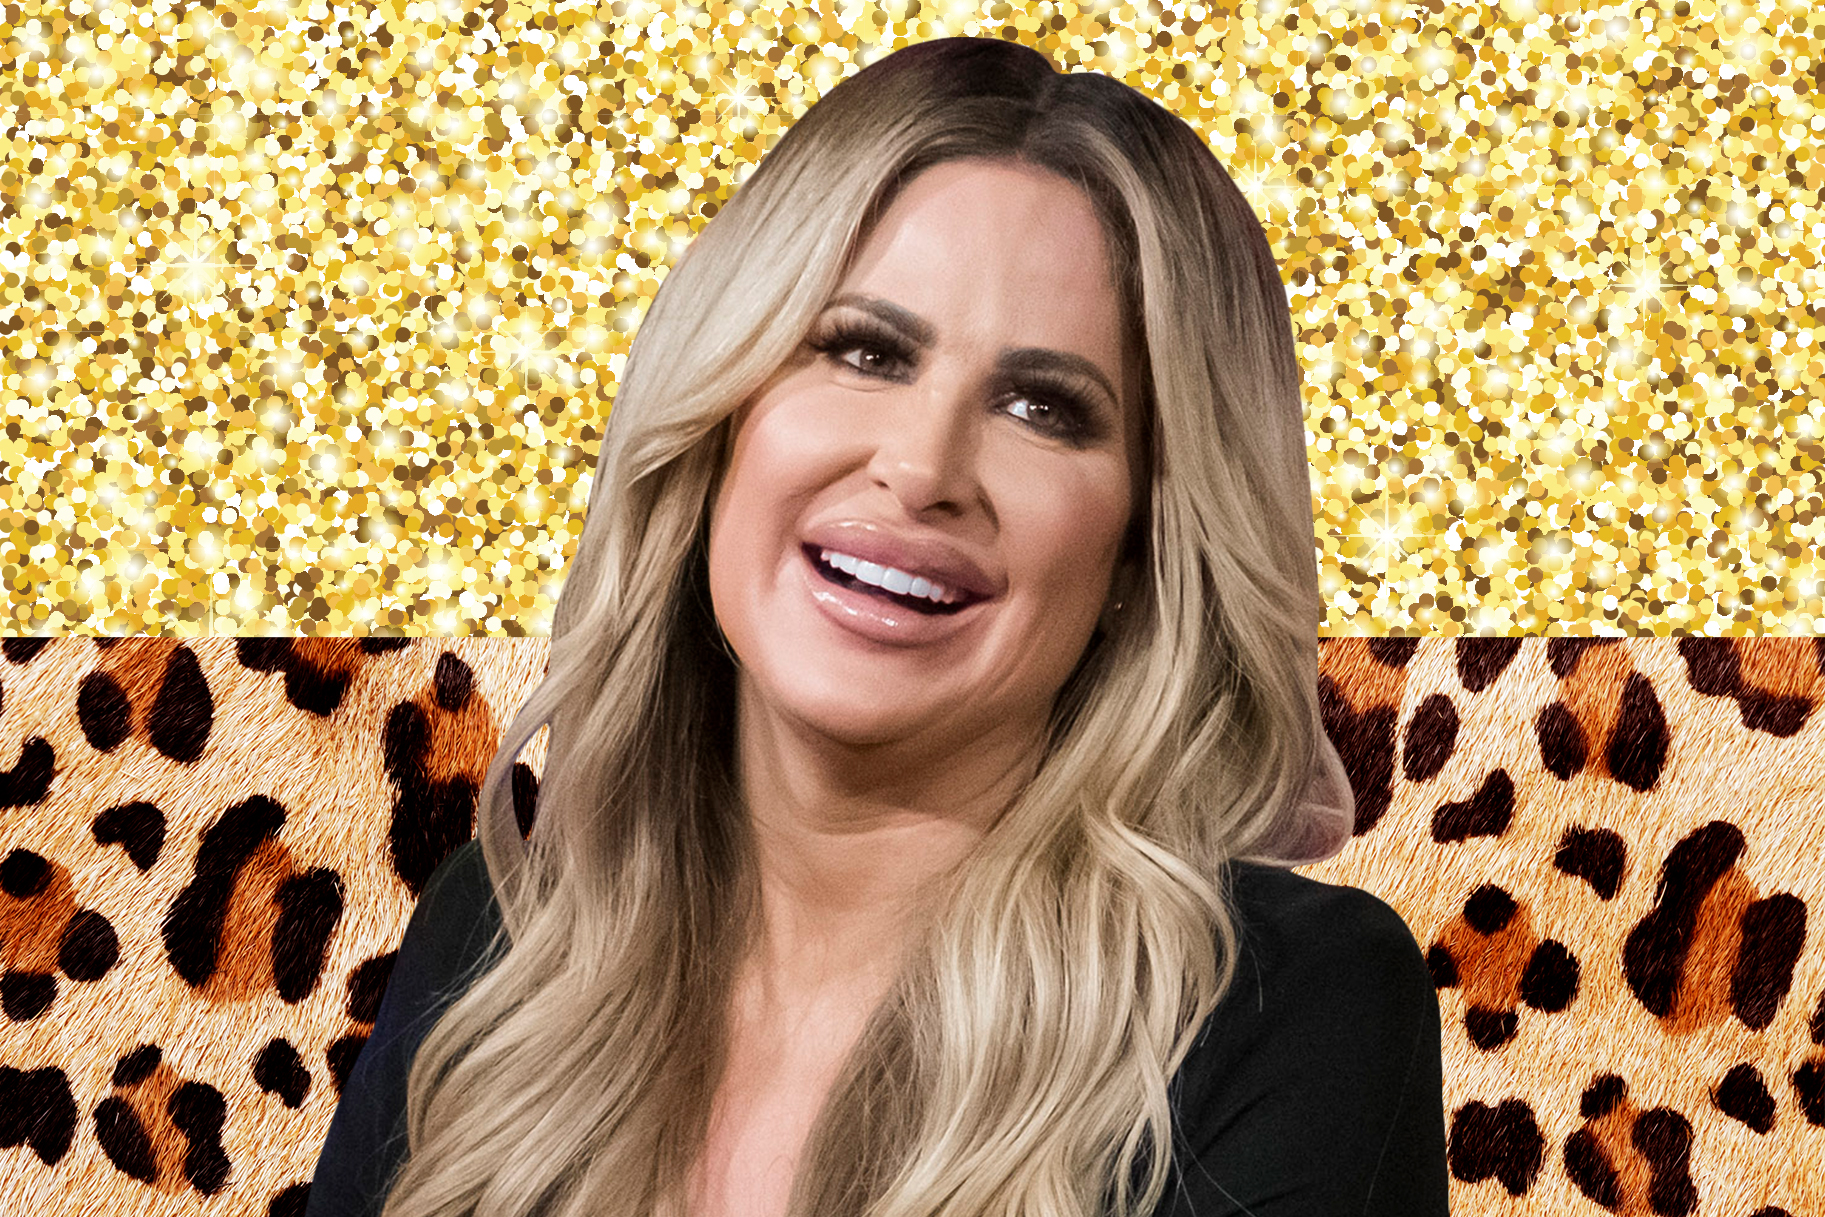 Kim Zolciak Biermann Birthday Cake